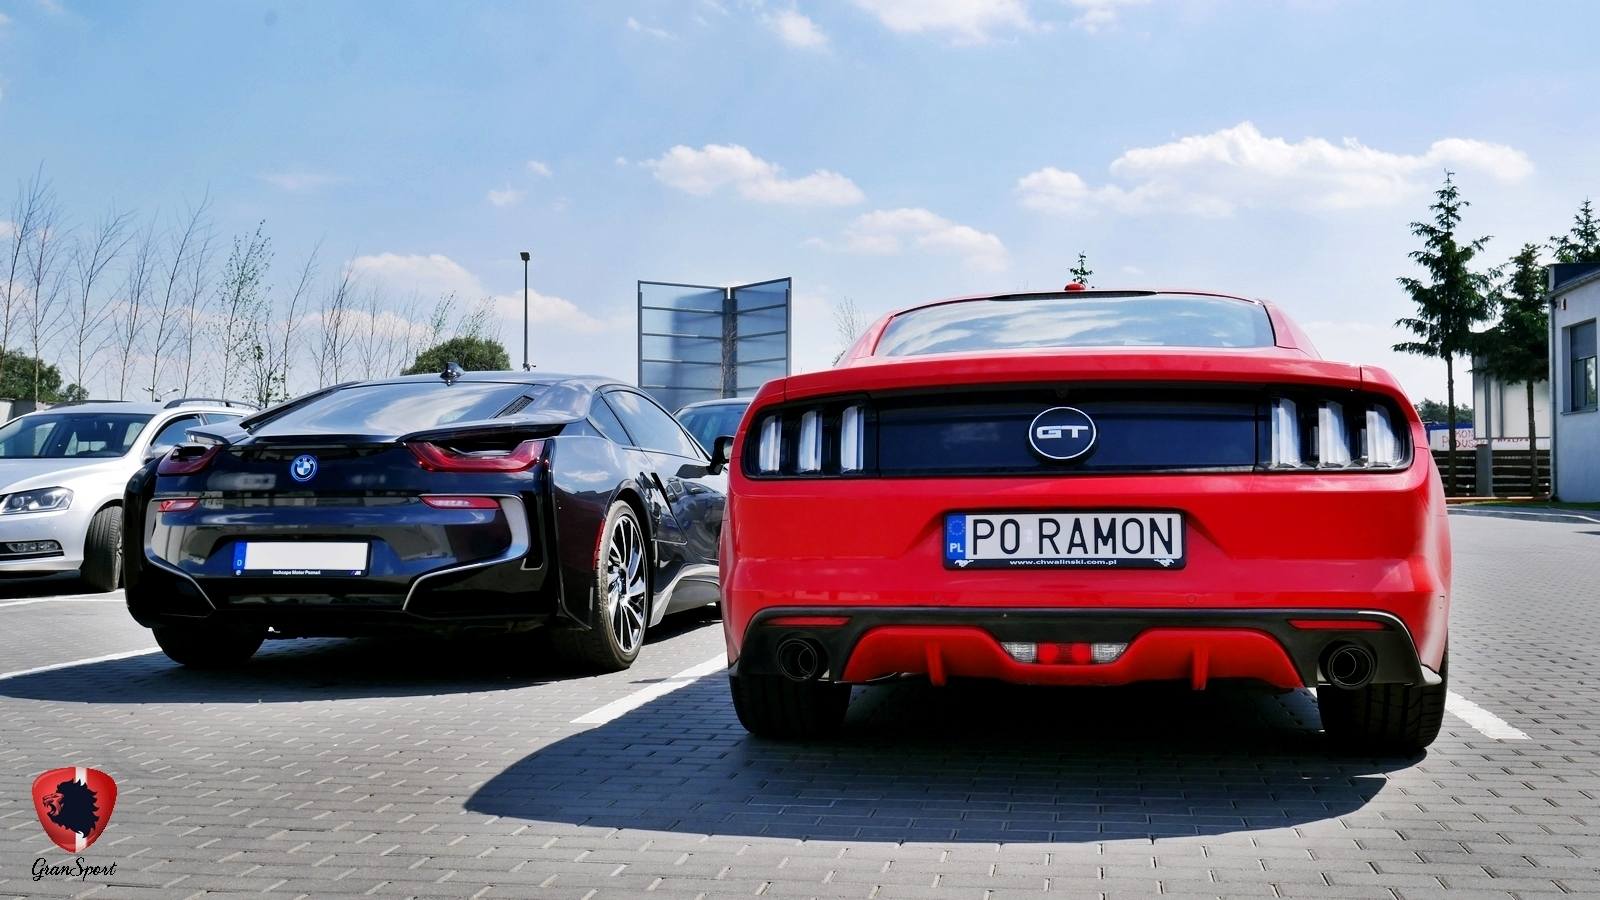 Ford Mustang GT 5.0 V8 Remus